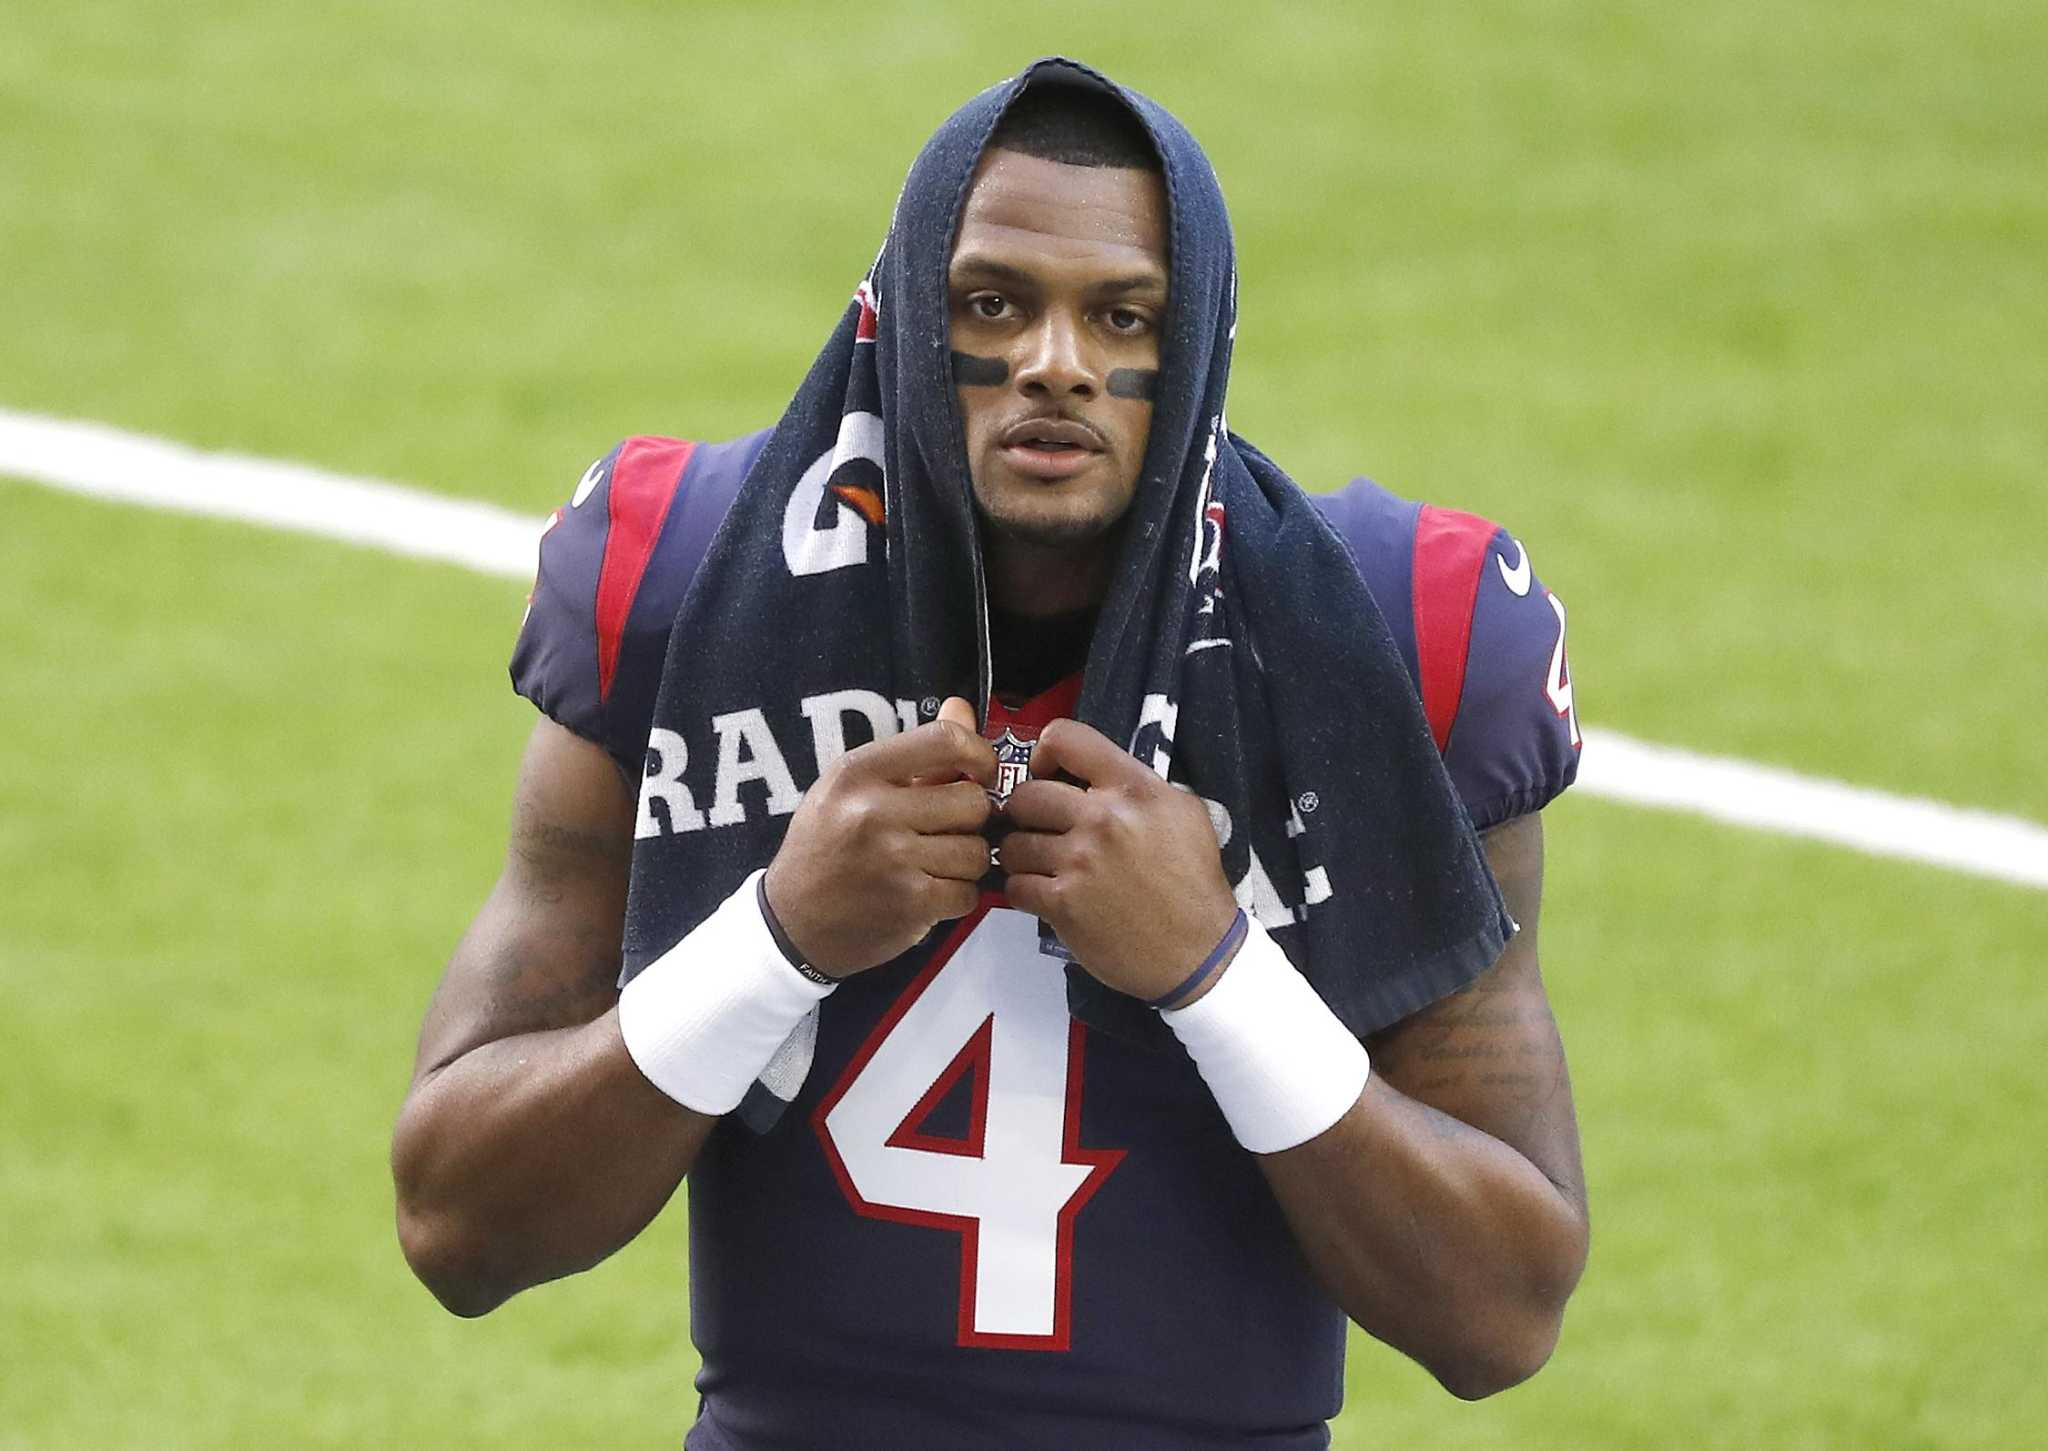 An open letter to Deshaun Watson: is the pain that real?